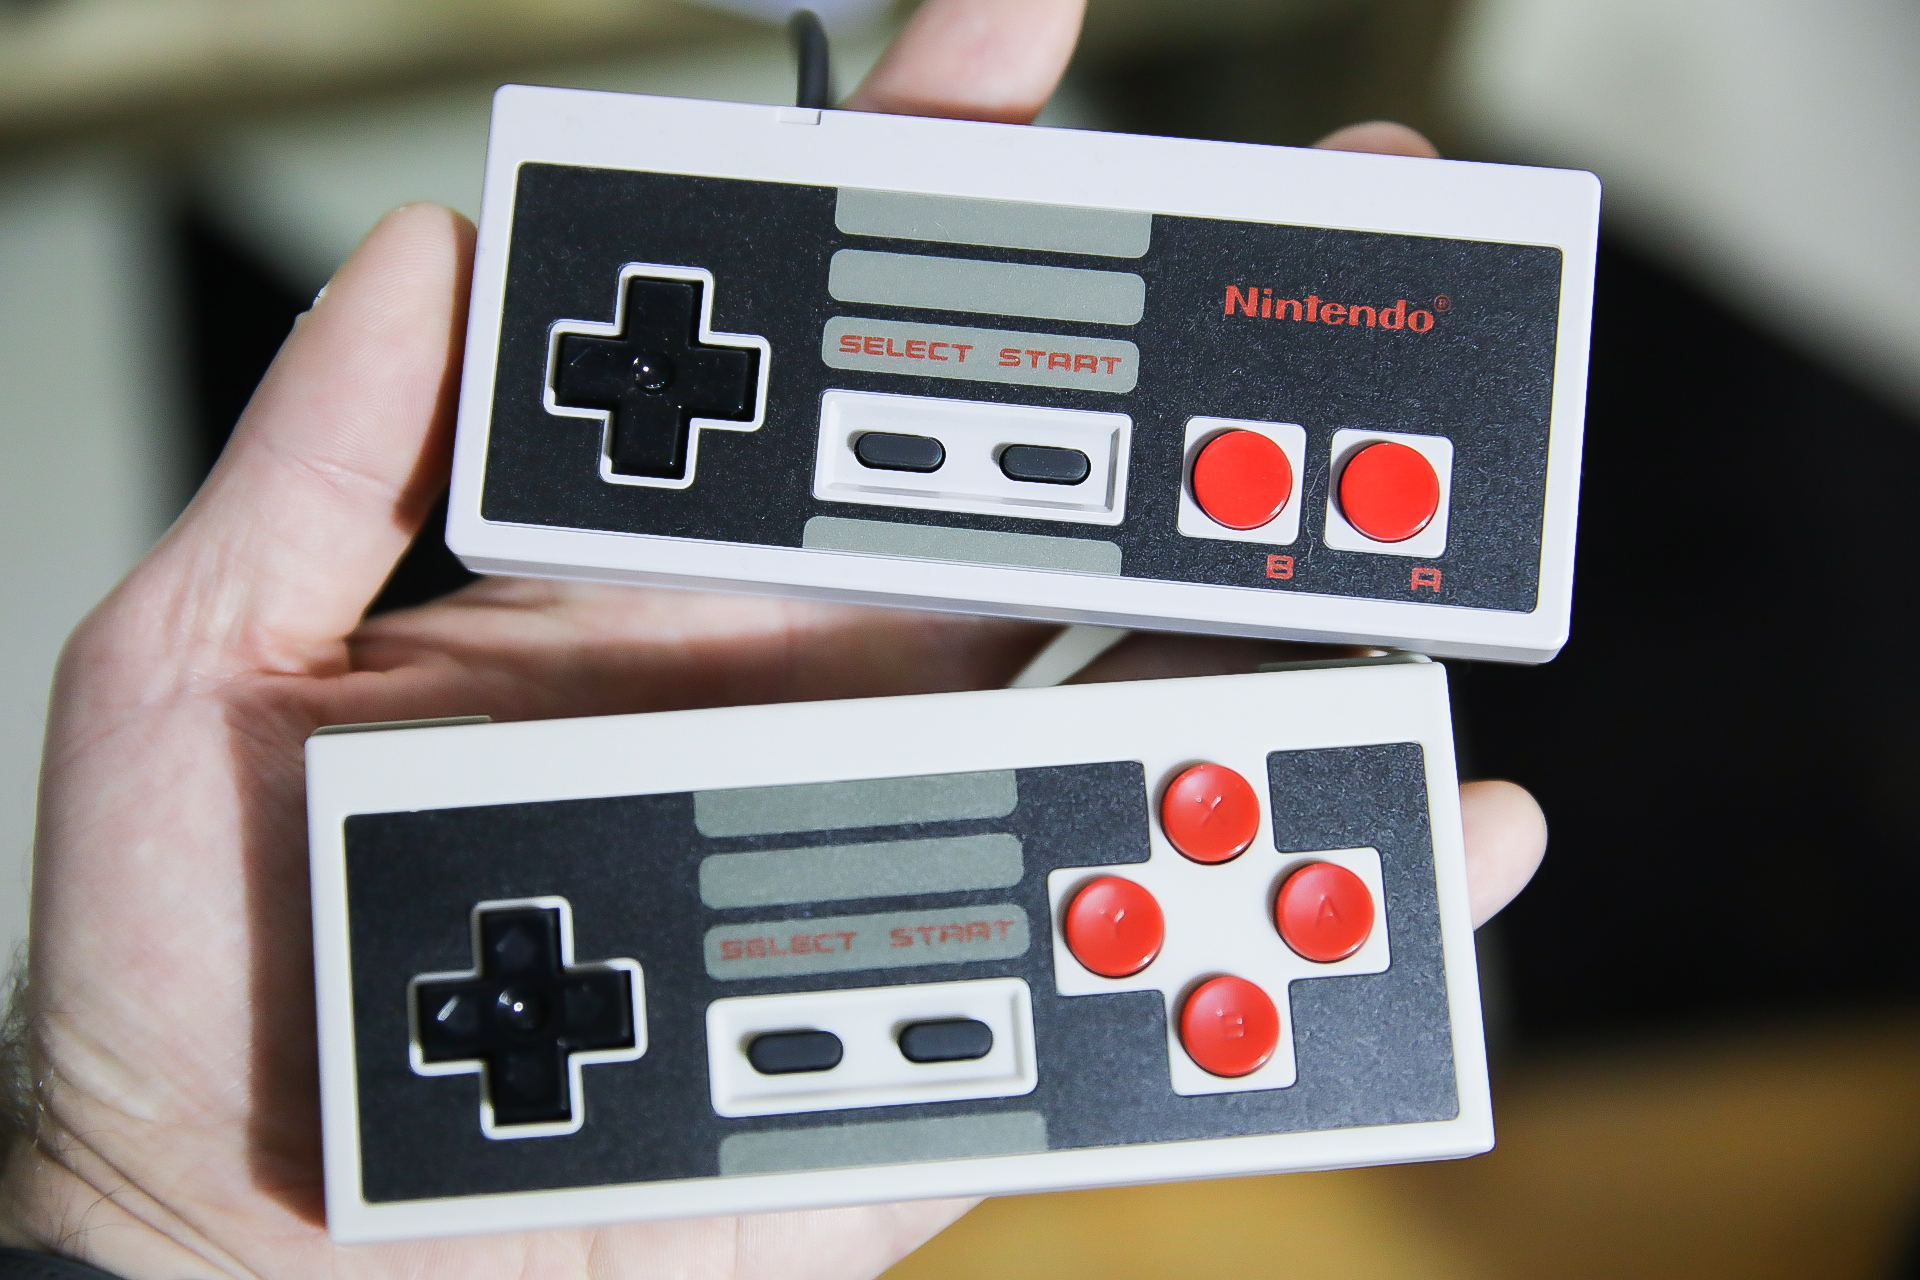 8Bitdo's NES30 and Retro Receiver for NES Classic is the